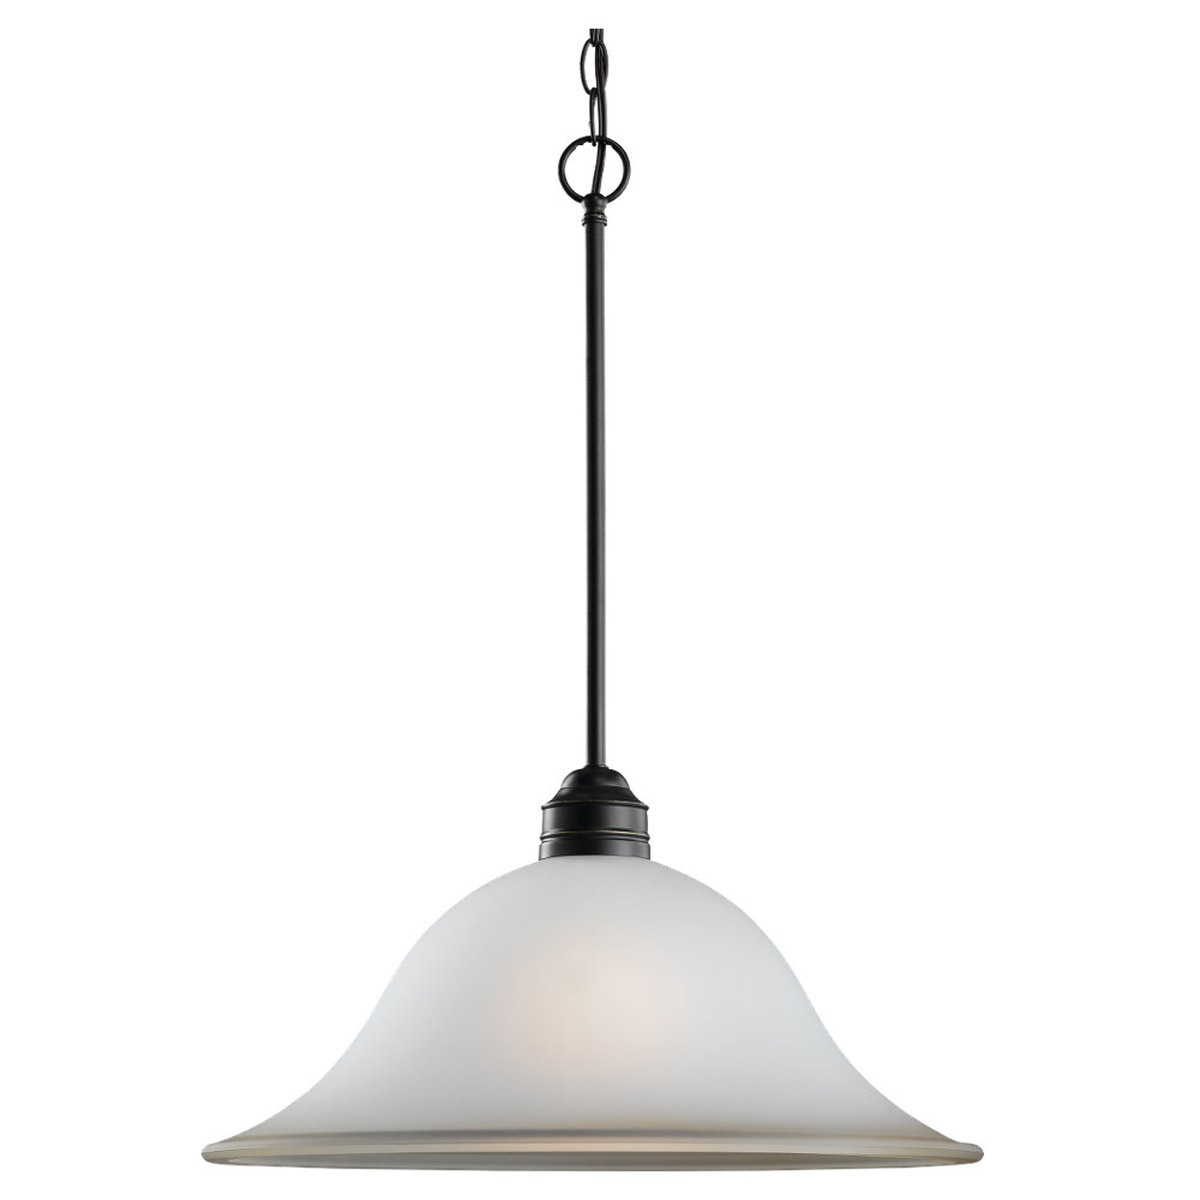 Sea Gull Lighting Gladstone 1 Light Pendant in Heirloom Bronze 65850-782